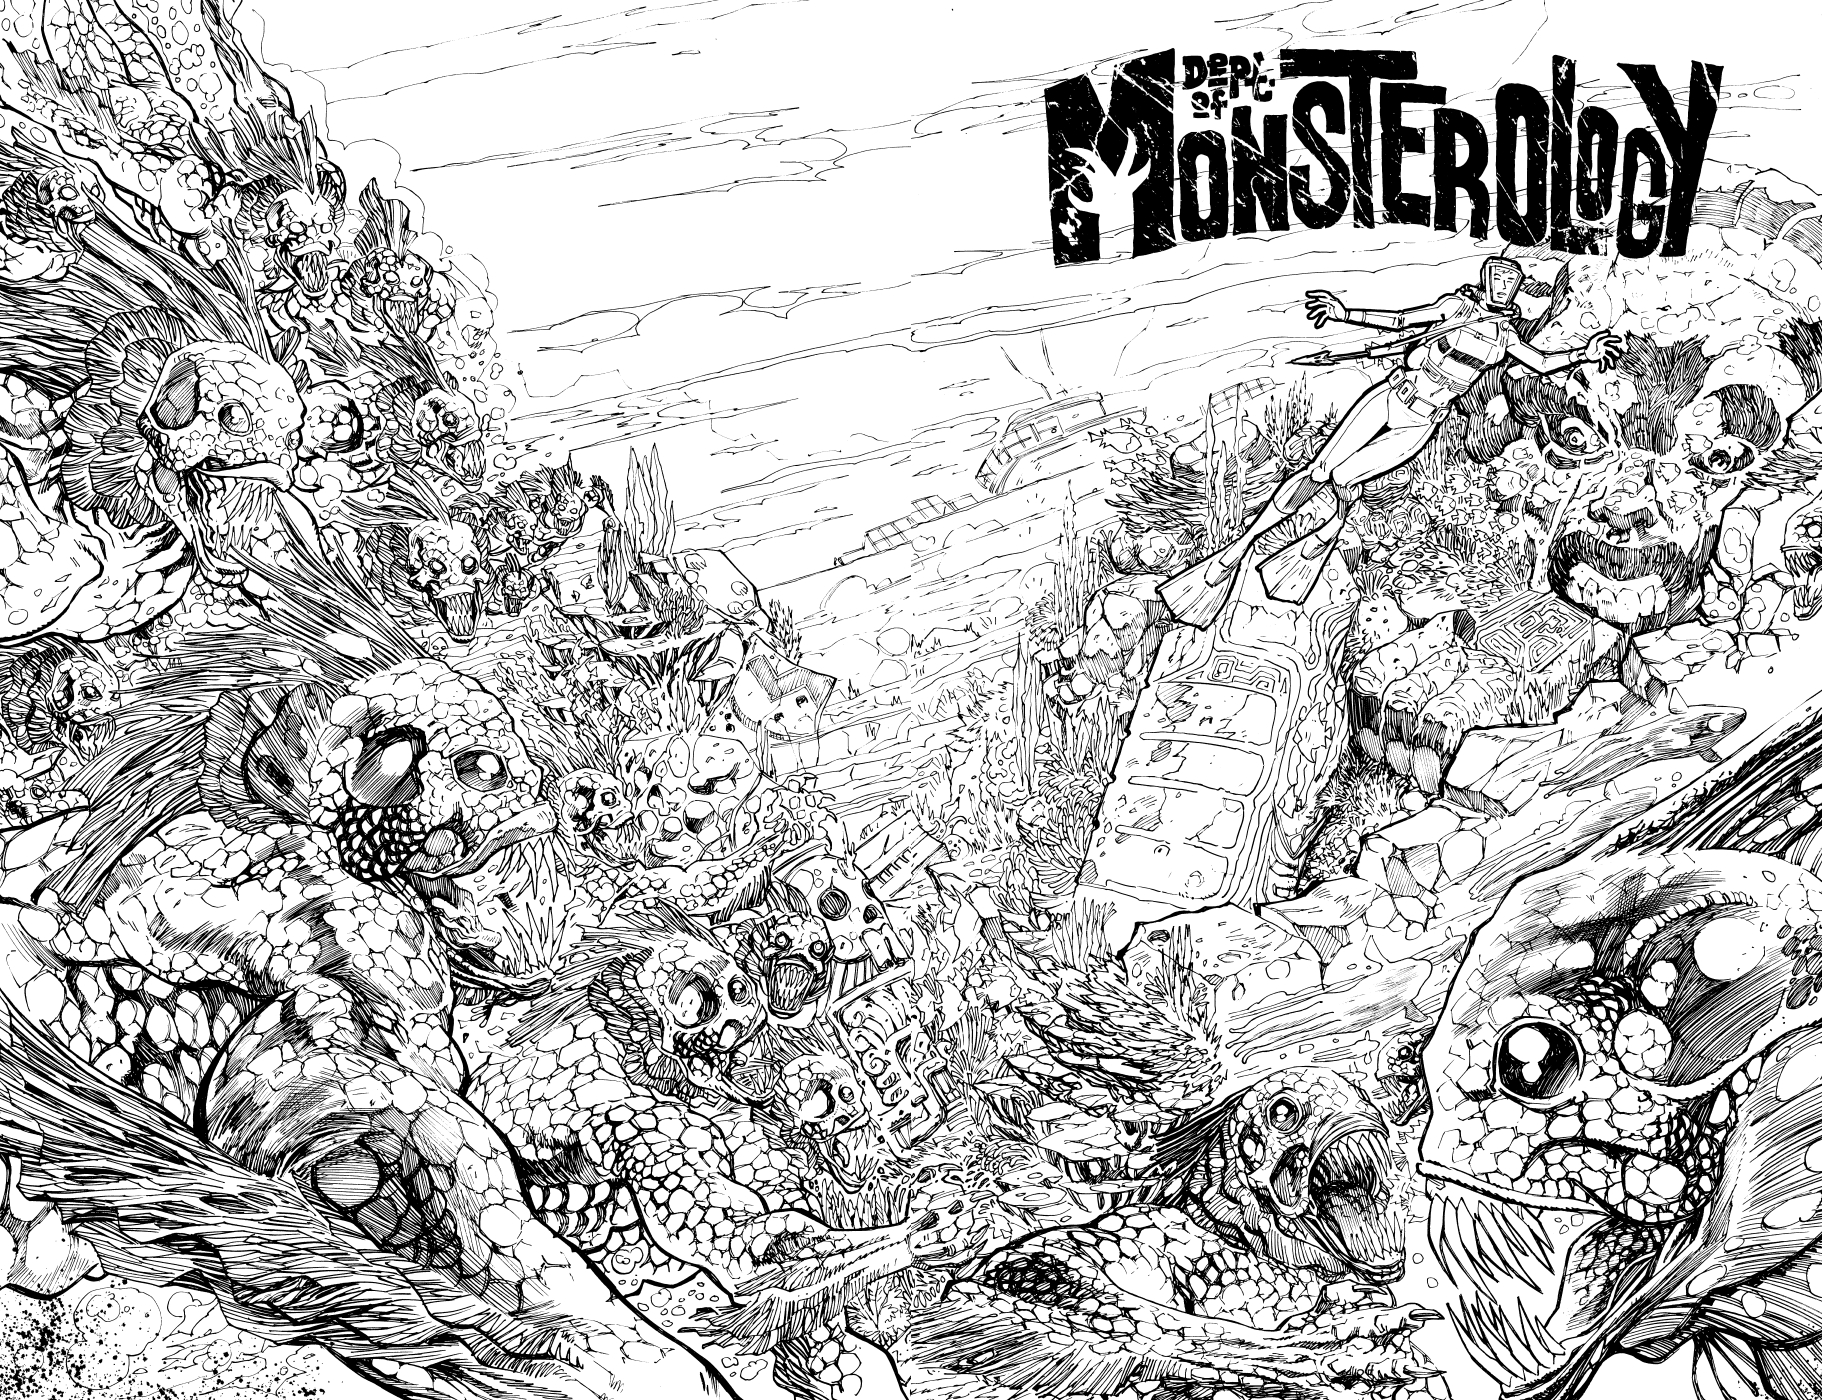 Dept of Monsterology by Gordon Rennie and PJ Holden